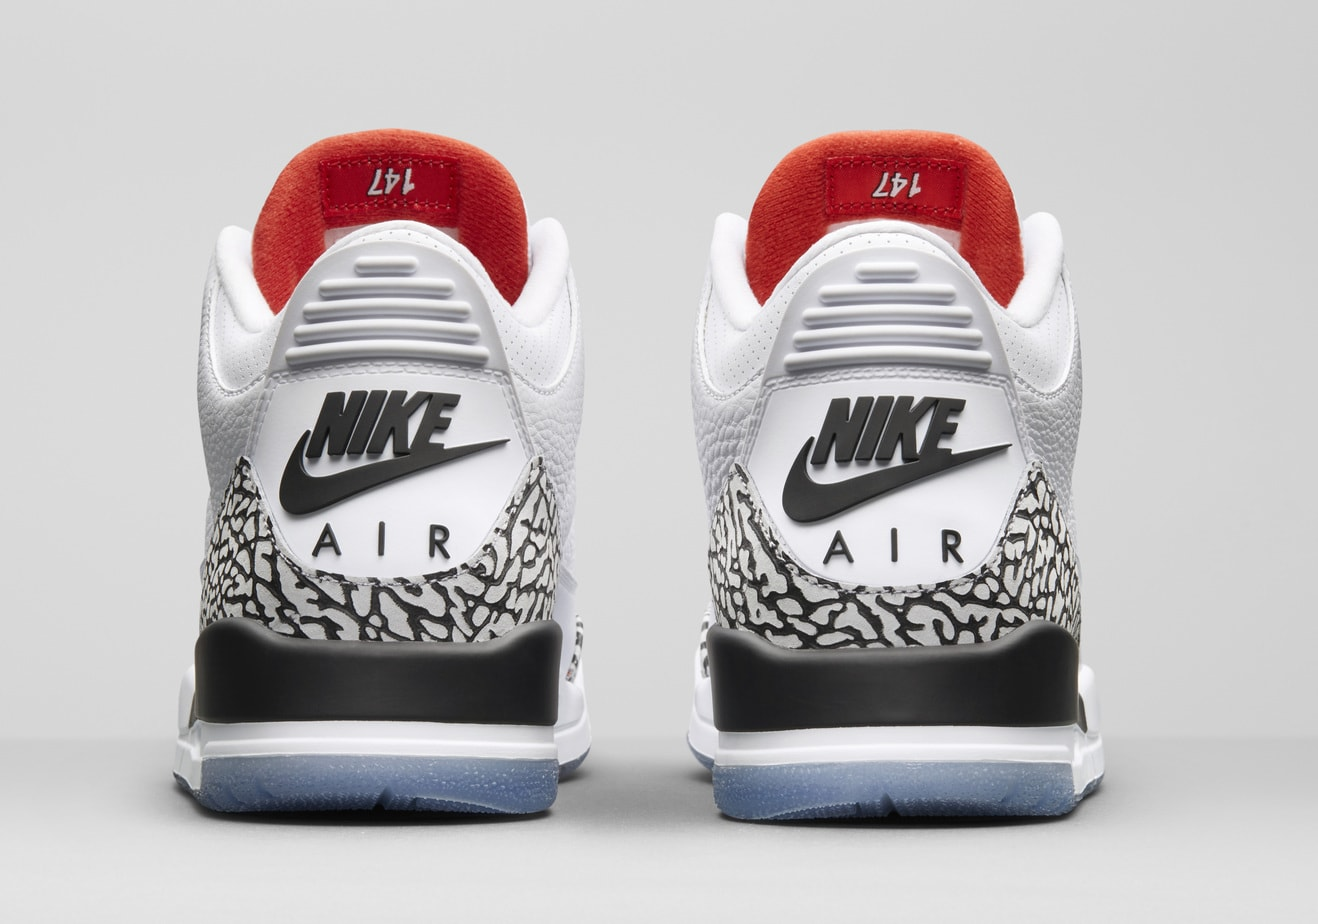 on sale 3add8 b6cb2 ... spain air jordan 3 nrg white cement release date february 14 2018.  price 200.